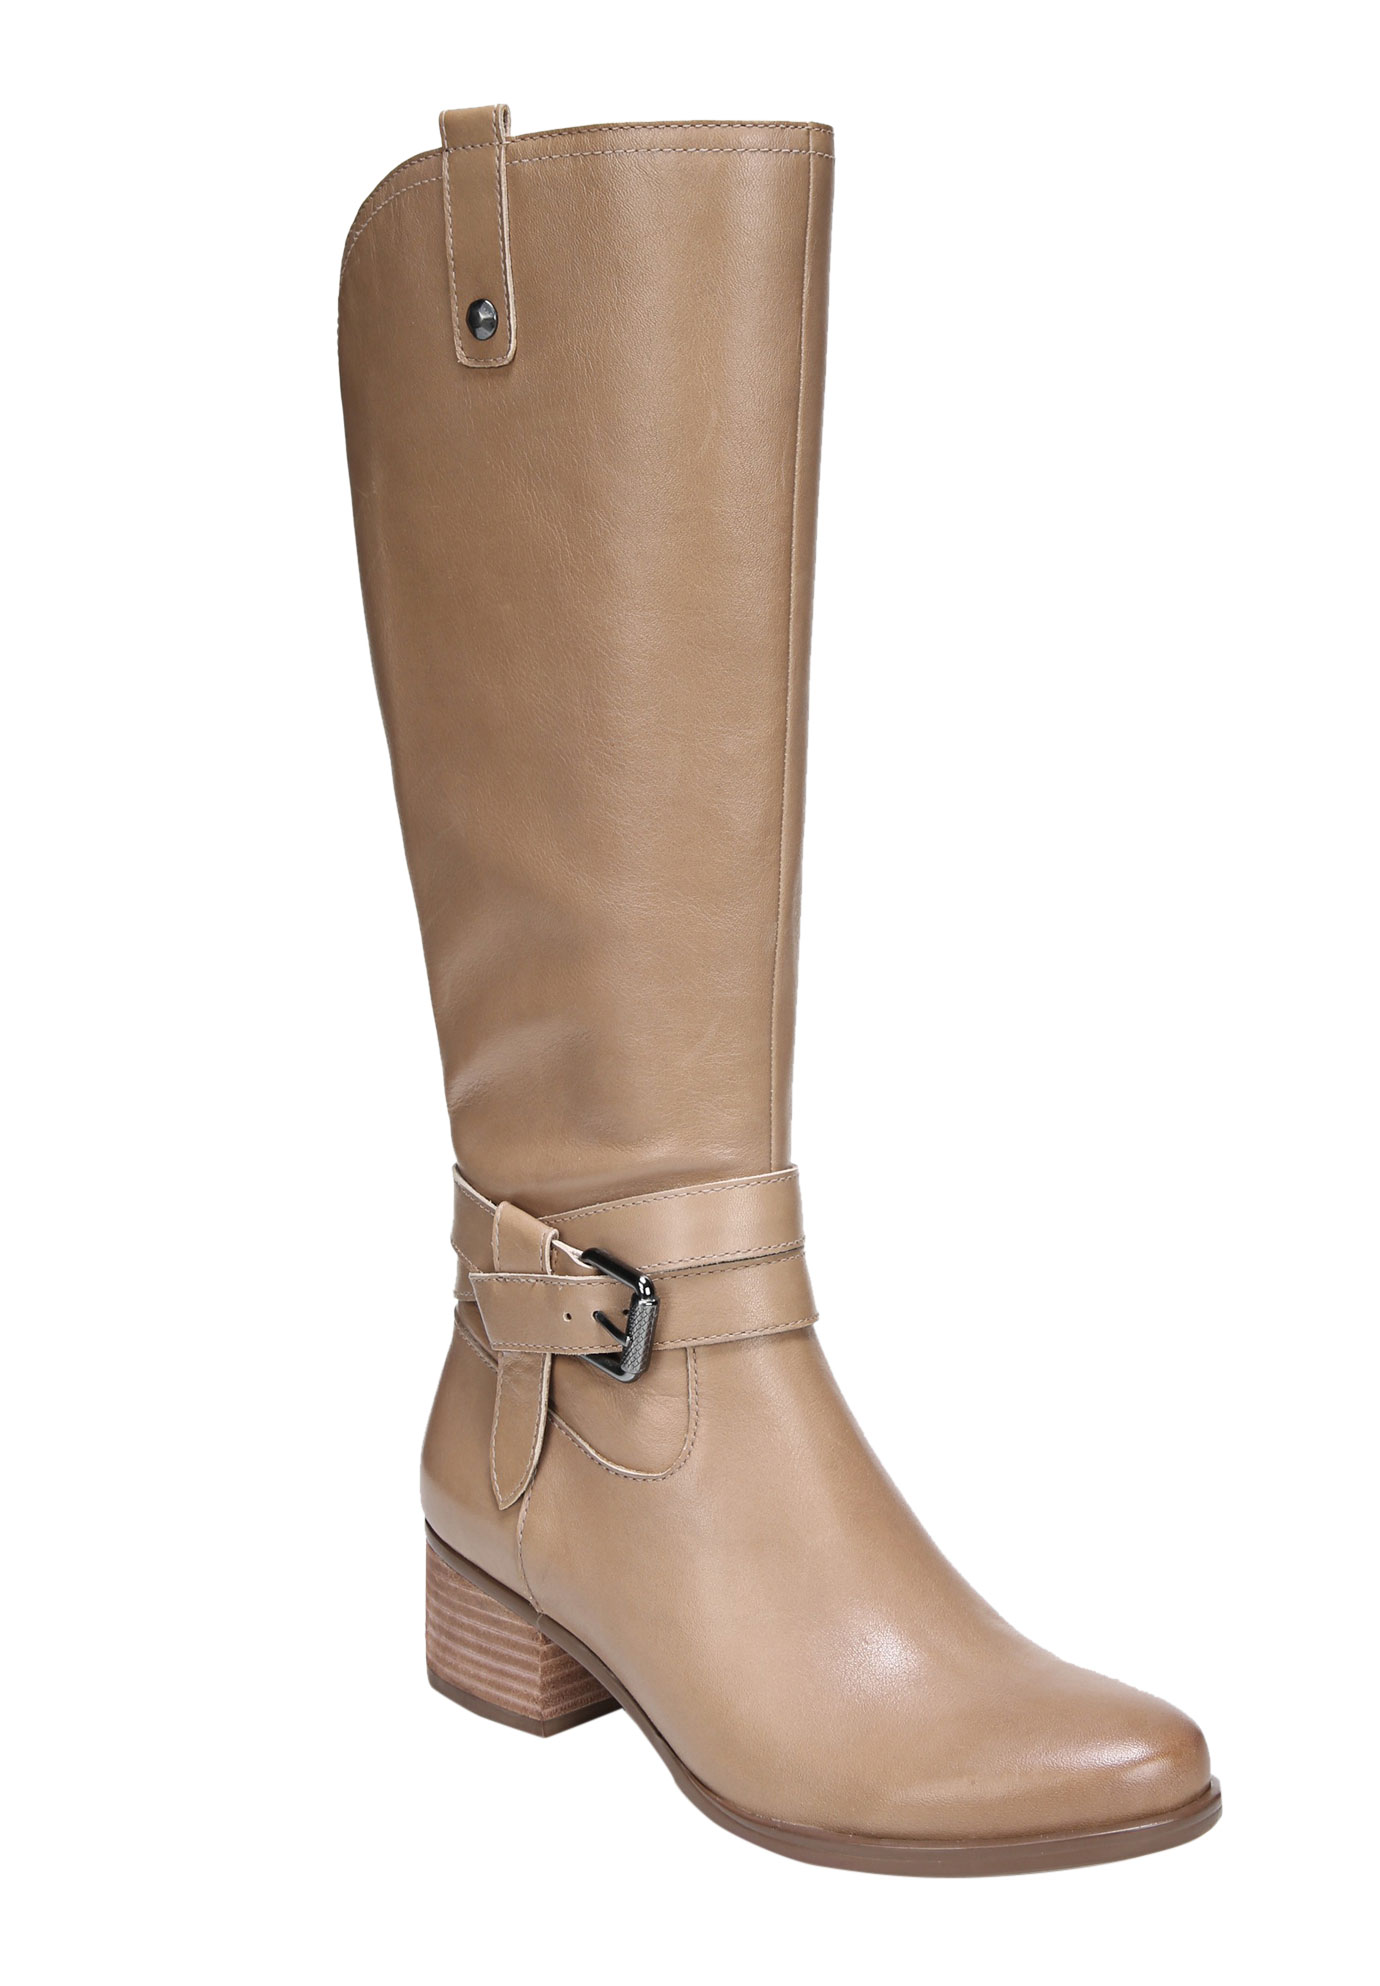 Dev Wide Calf Boots by Naturalizer®, OATMEAL, hi-res